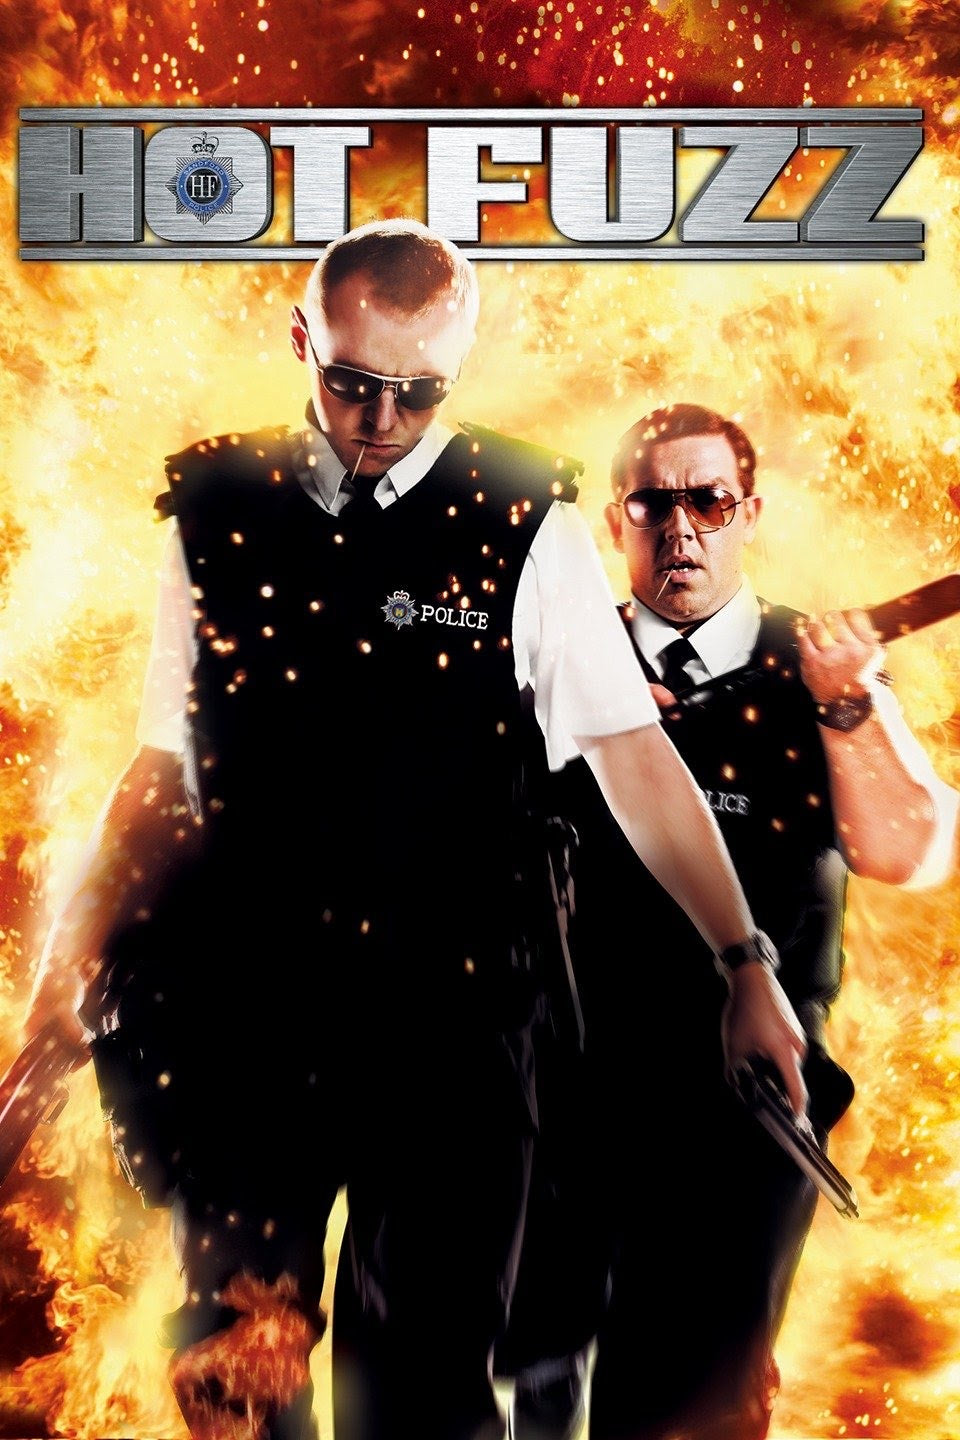 Hot Fuzz (2007) Vudu or Movies Anywhere HD redemption only